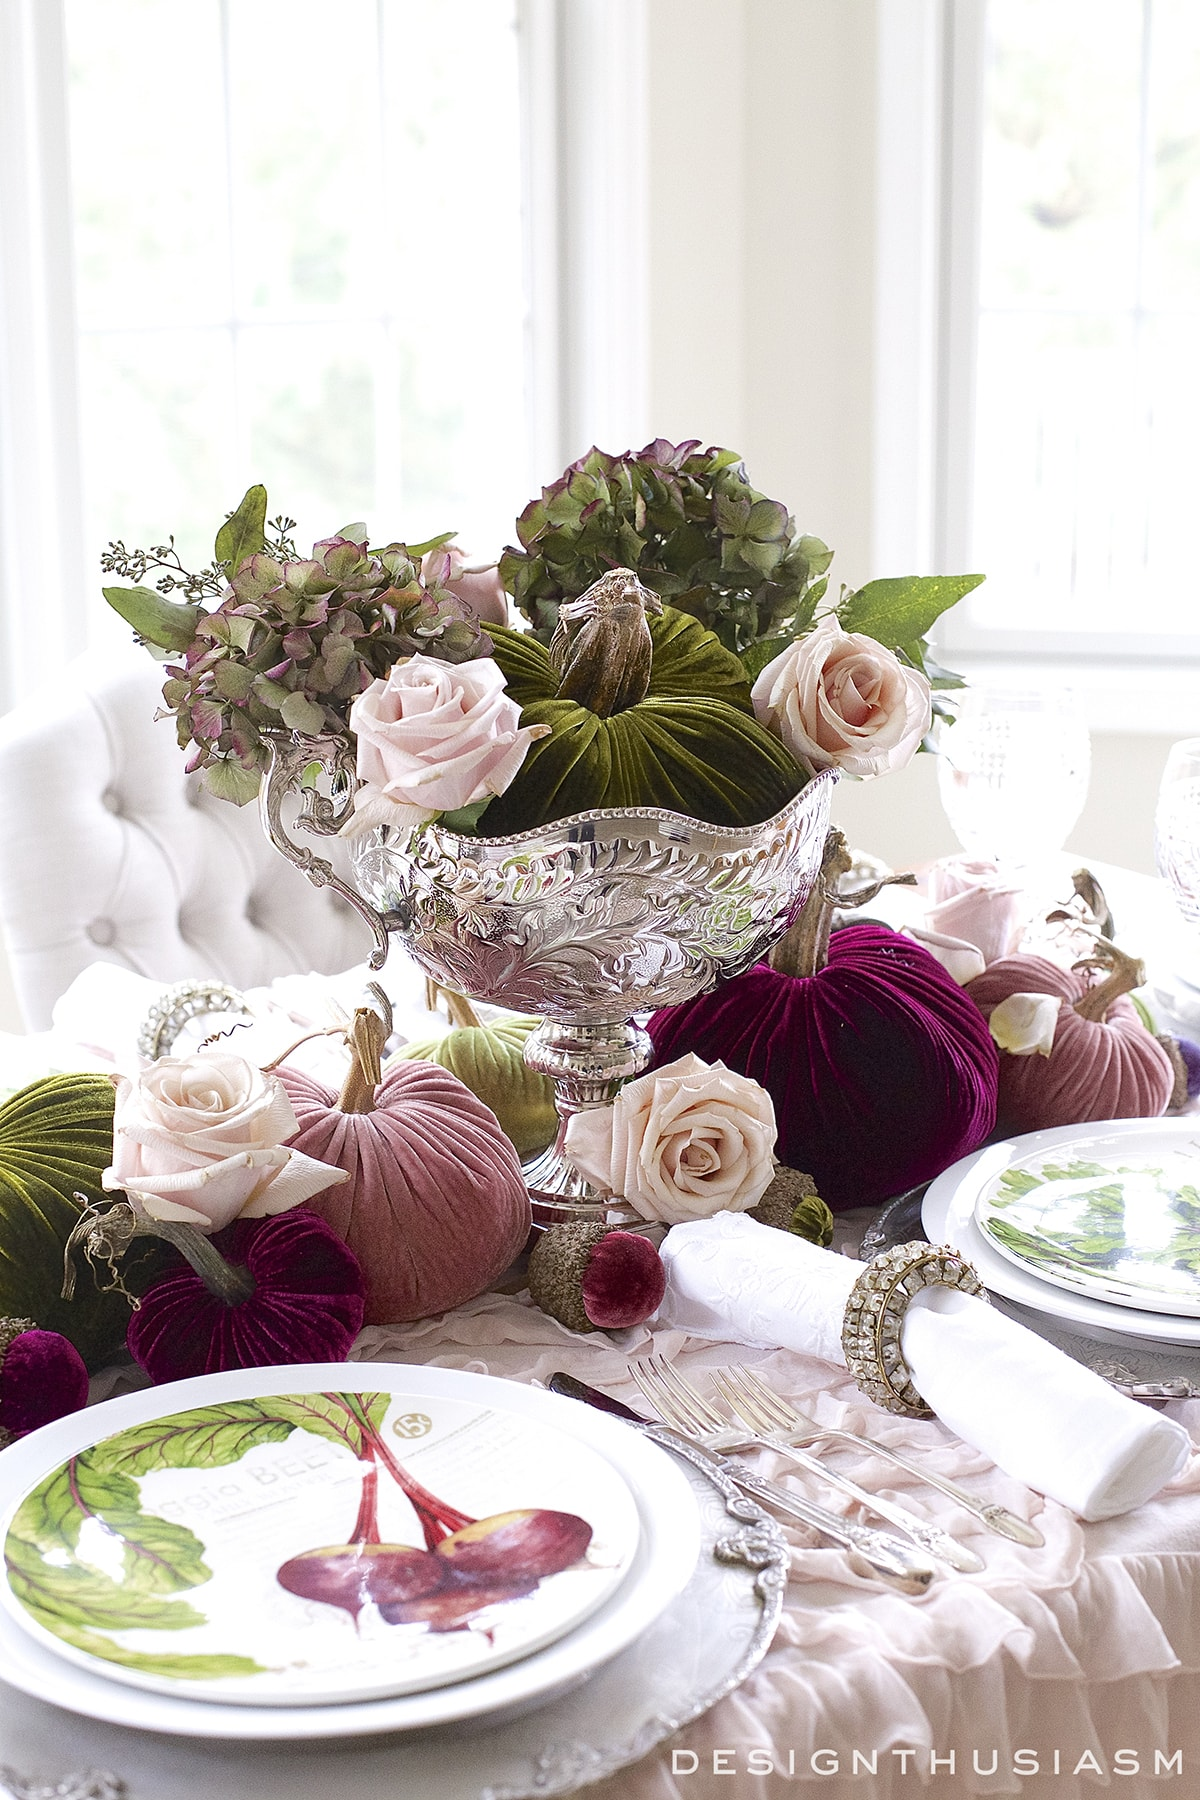 Creative Ideas for Fall or Thanksgiving Table Settings and Home Decor 17